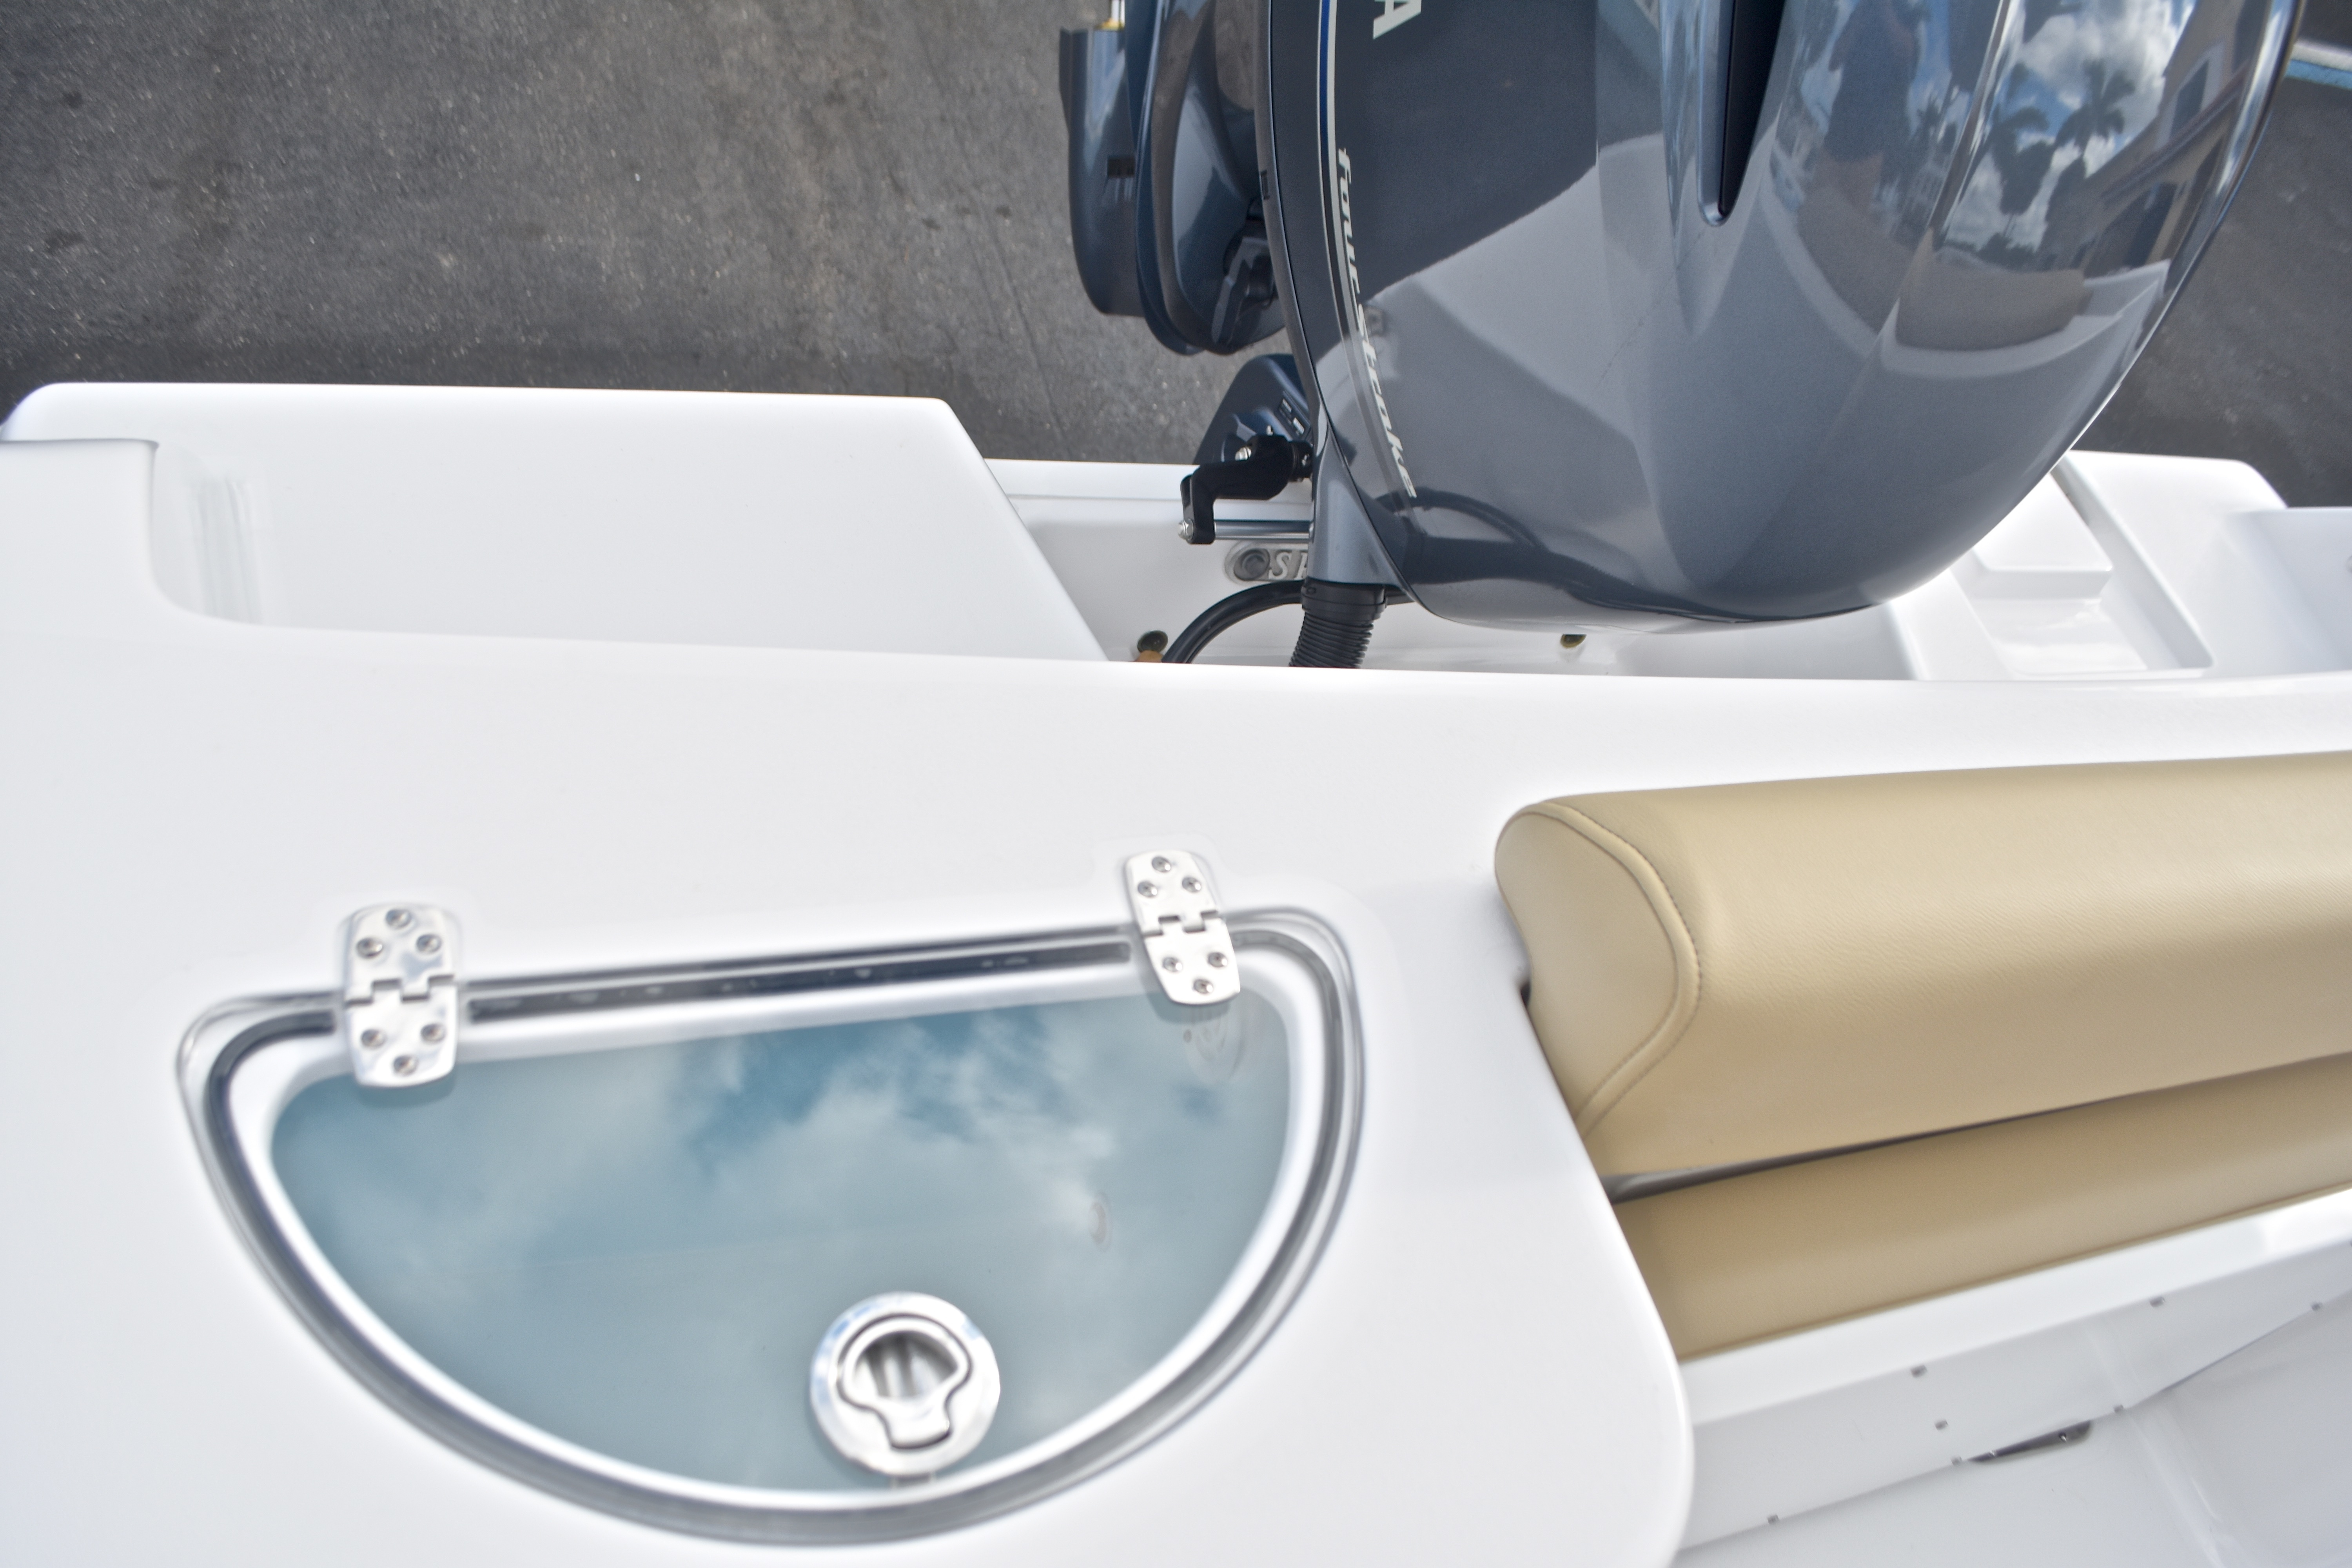 Thumbnail 15 for New 2017 Sportsman Open 232 Center Console boat for sale in West Palm Beach, FL